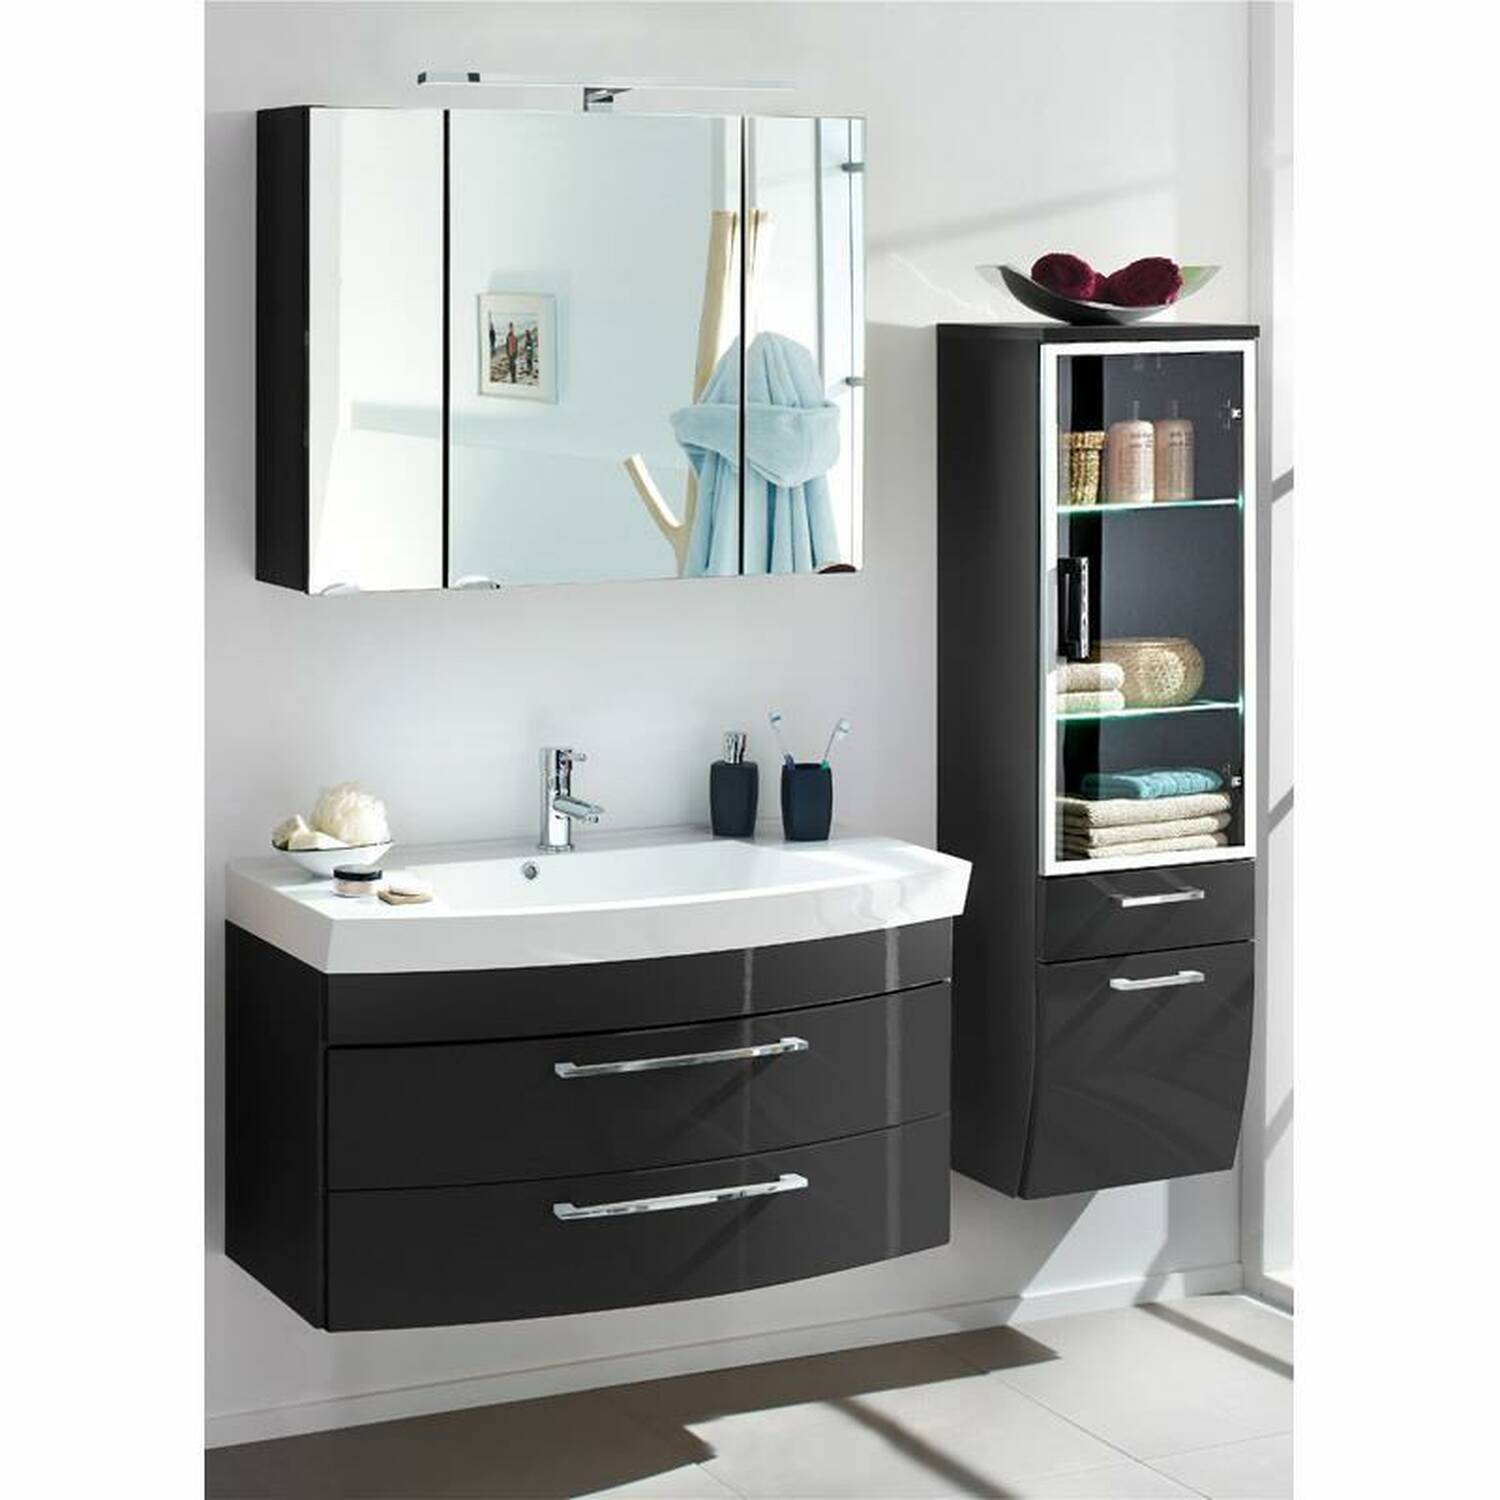 badm bel set rimao 100 hochglanz anthrazit waschp. Black Bedroom Furniture Sets. Home Design Ideas